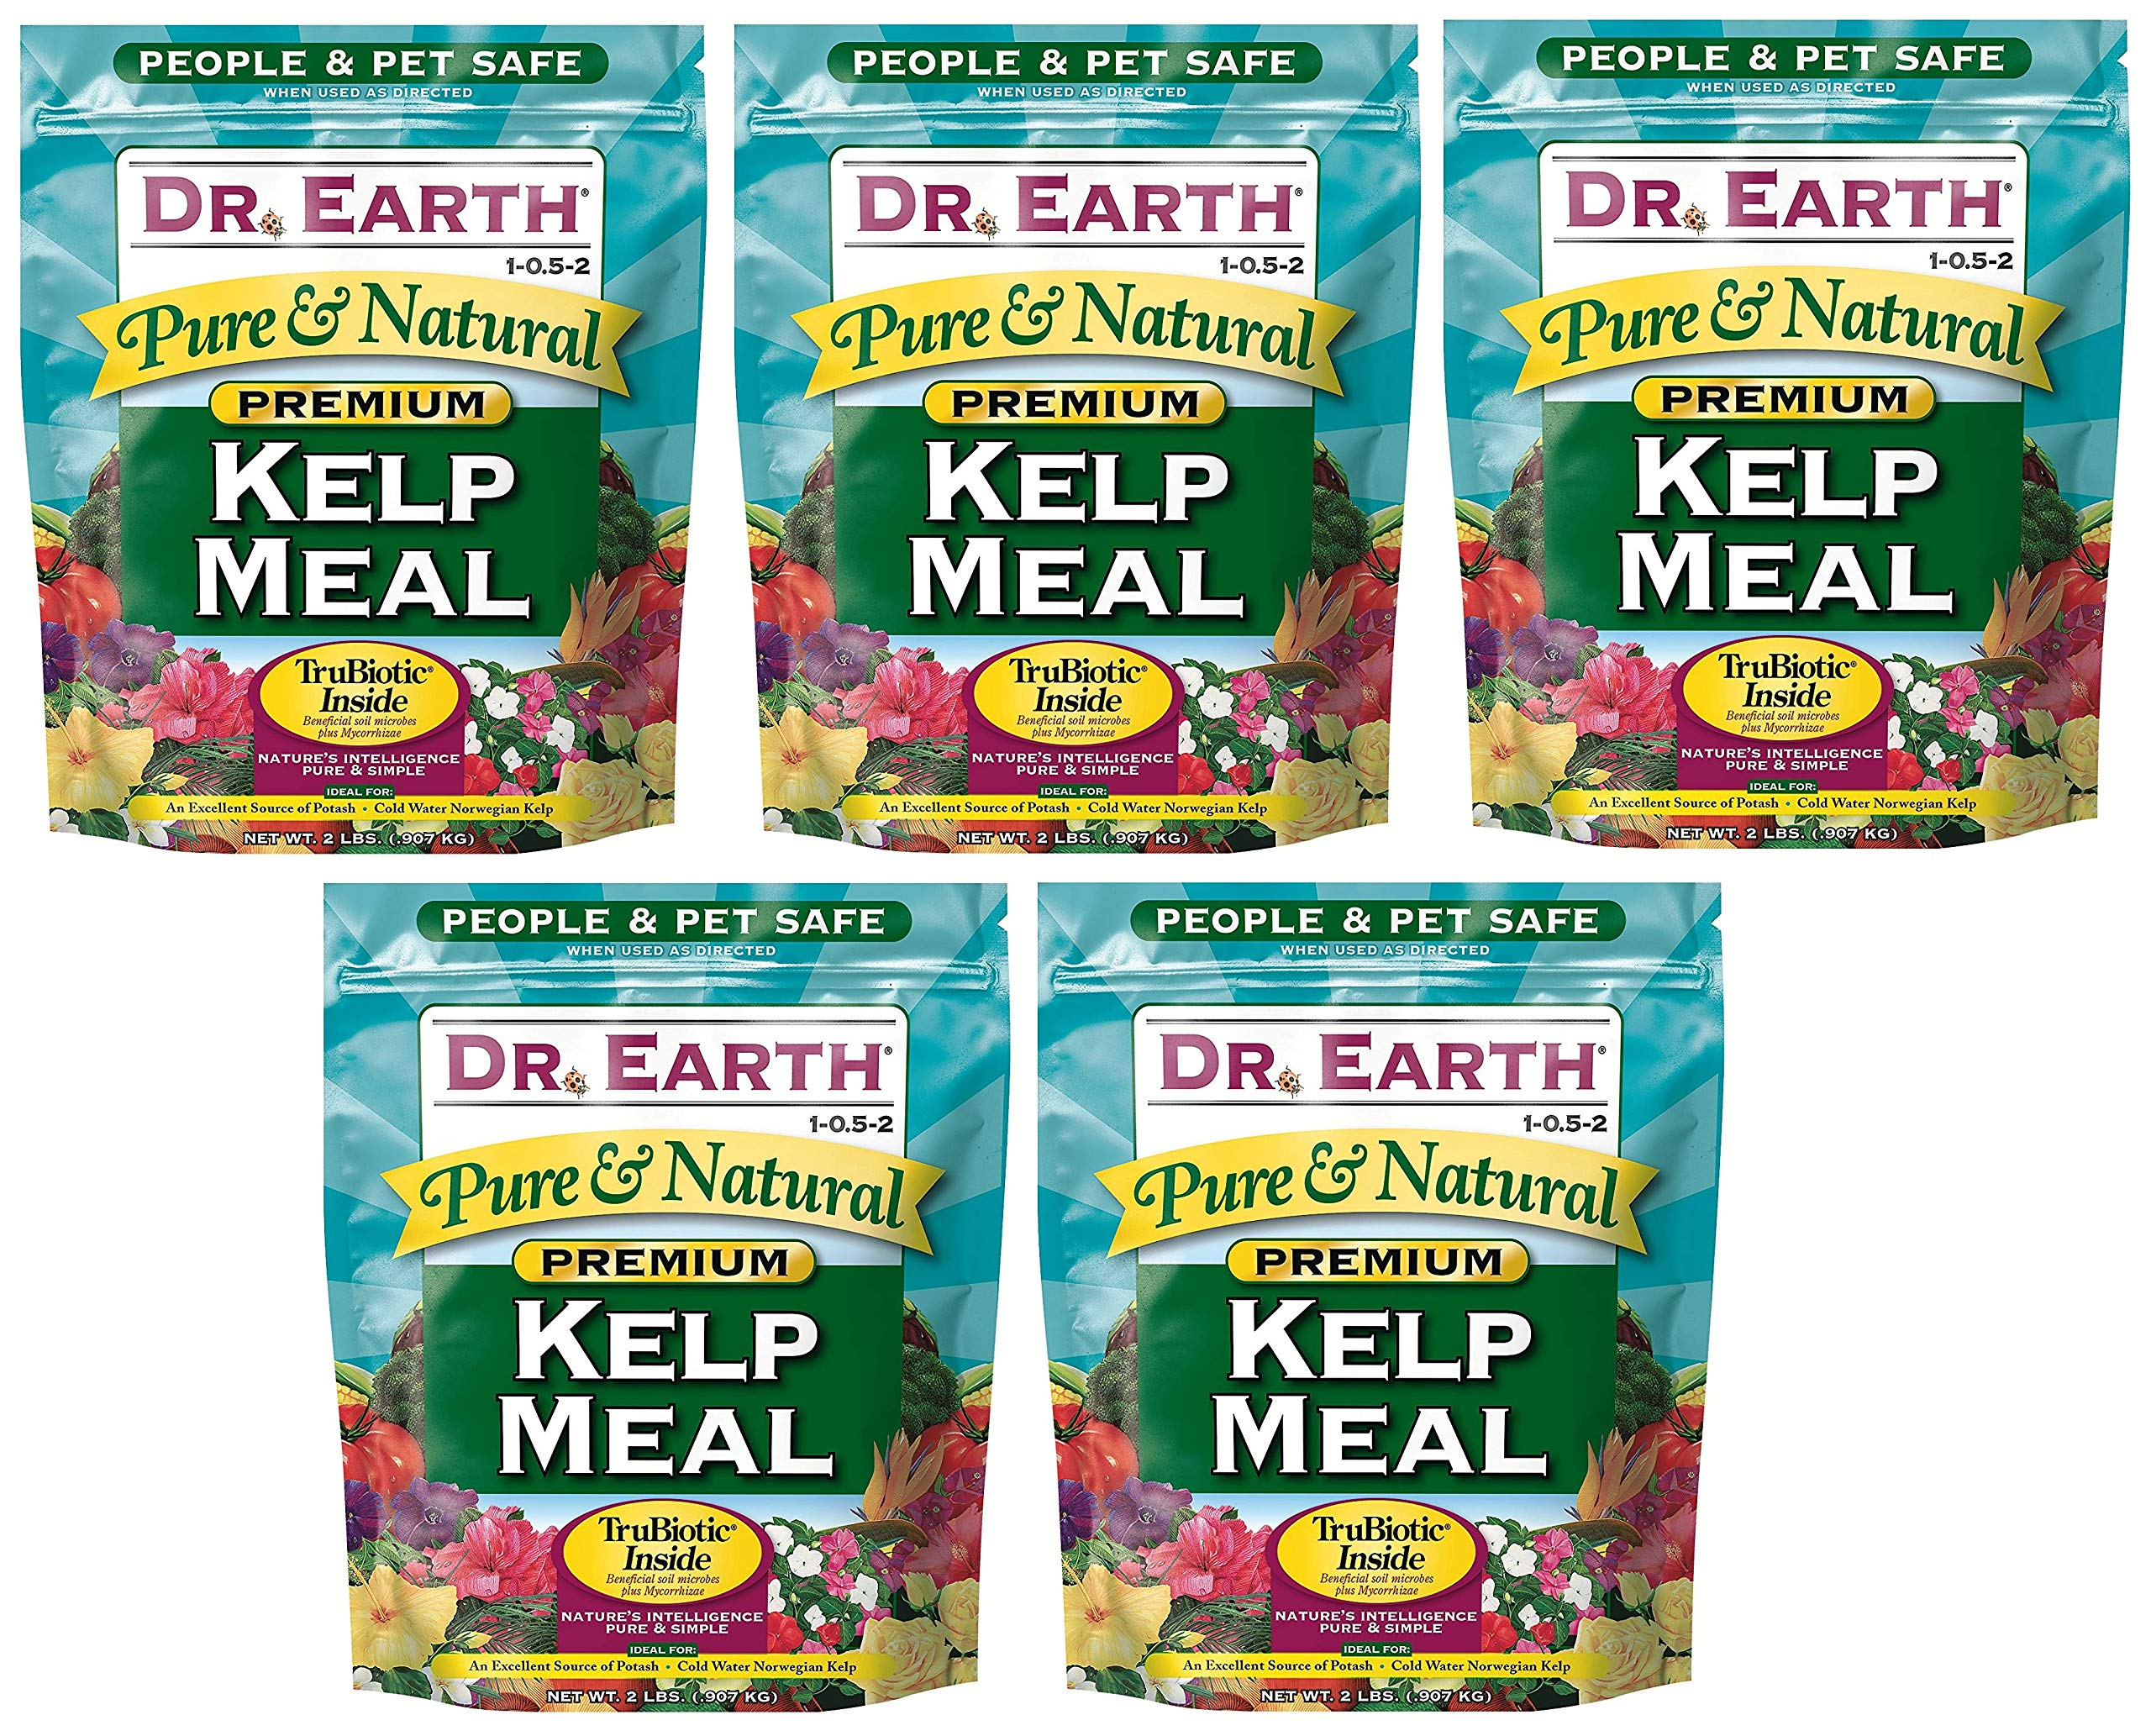 Dr. Earth 725 Kelp Meal 1-0. 5-2 2.5 Boxed, 2-Pound (Вundlе оf Fіvе)